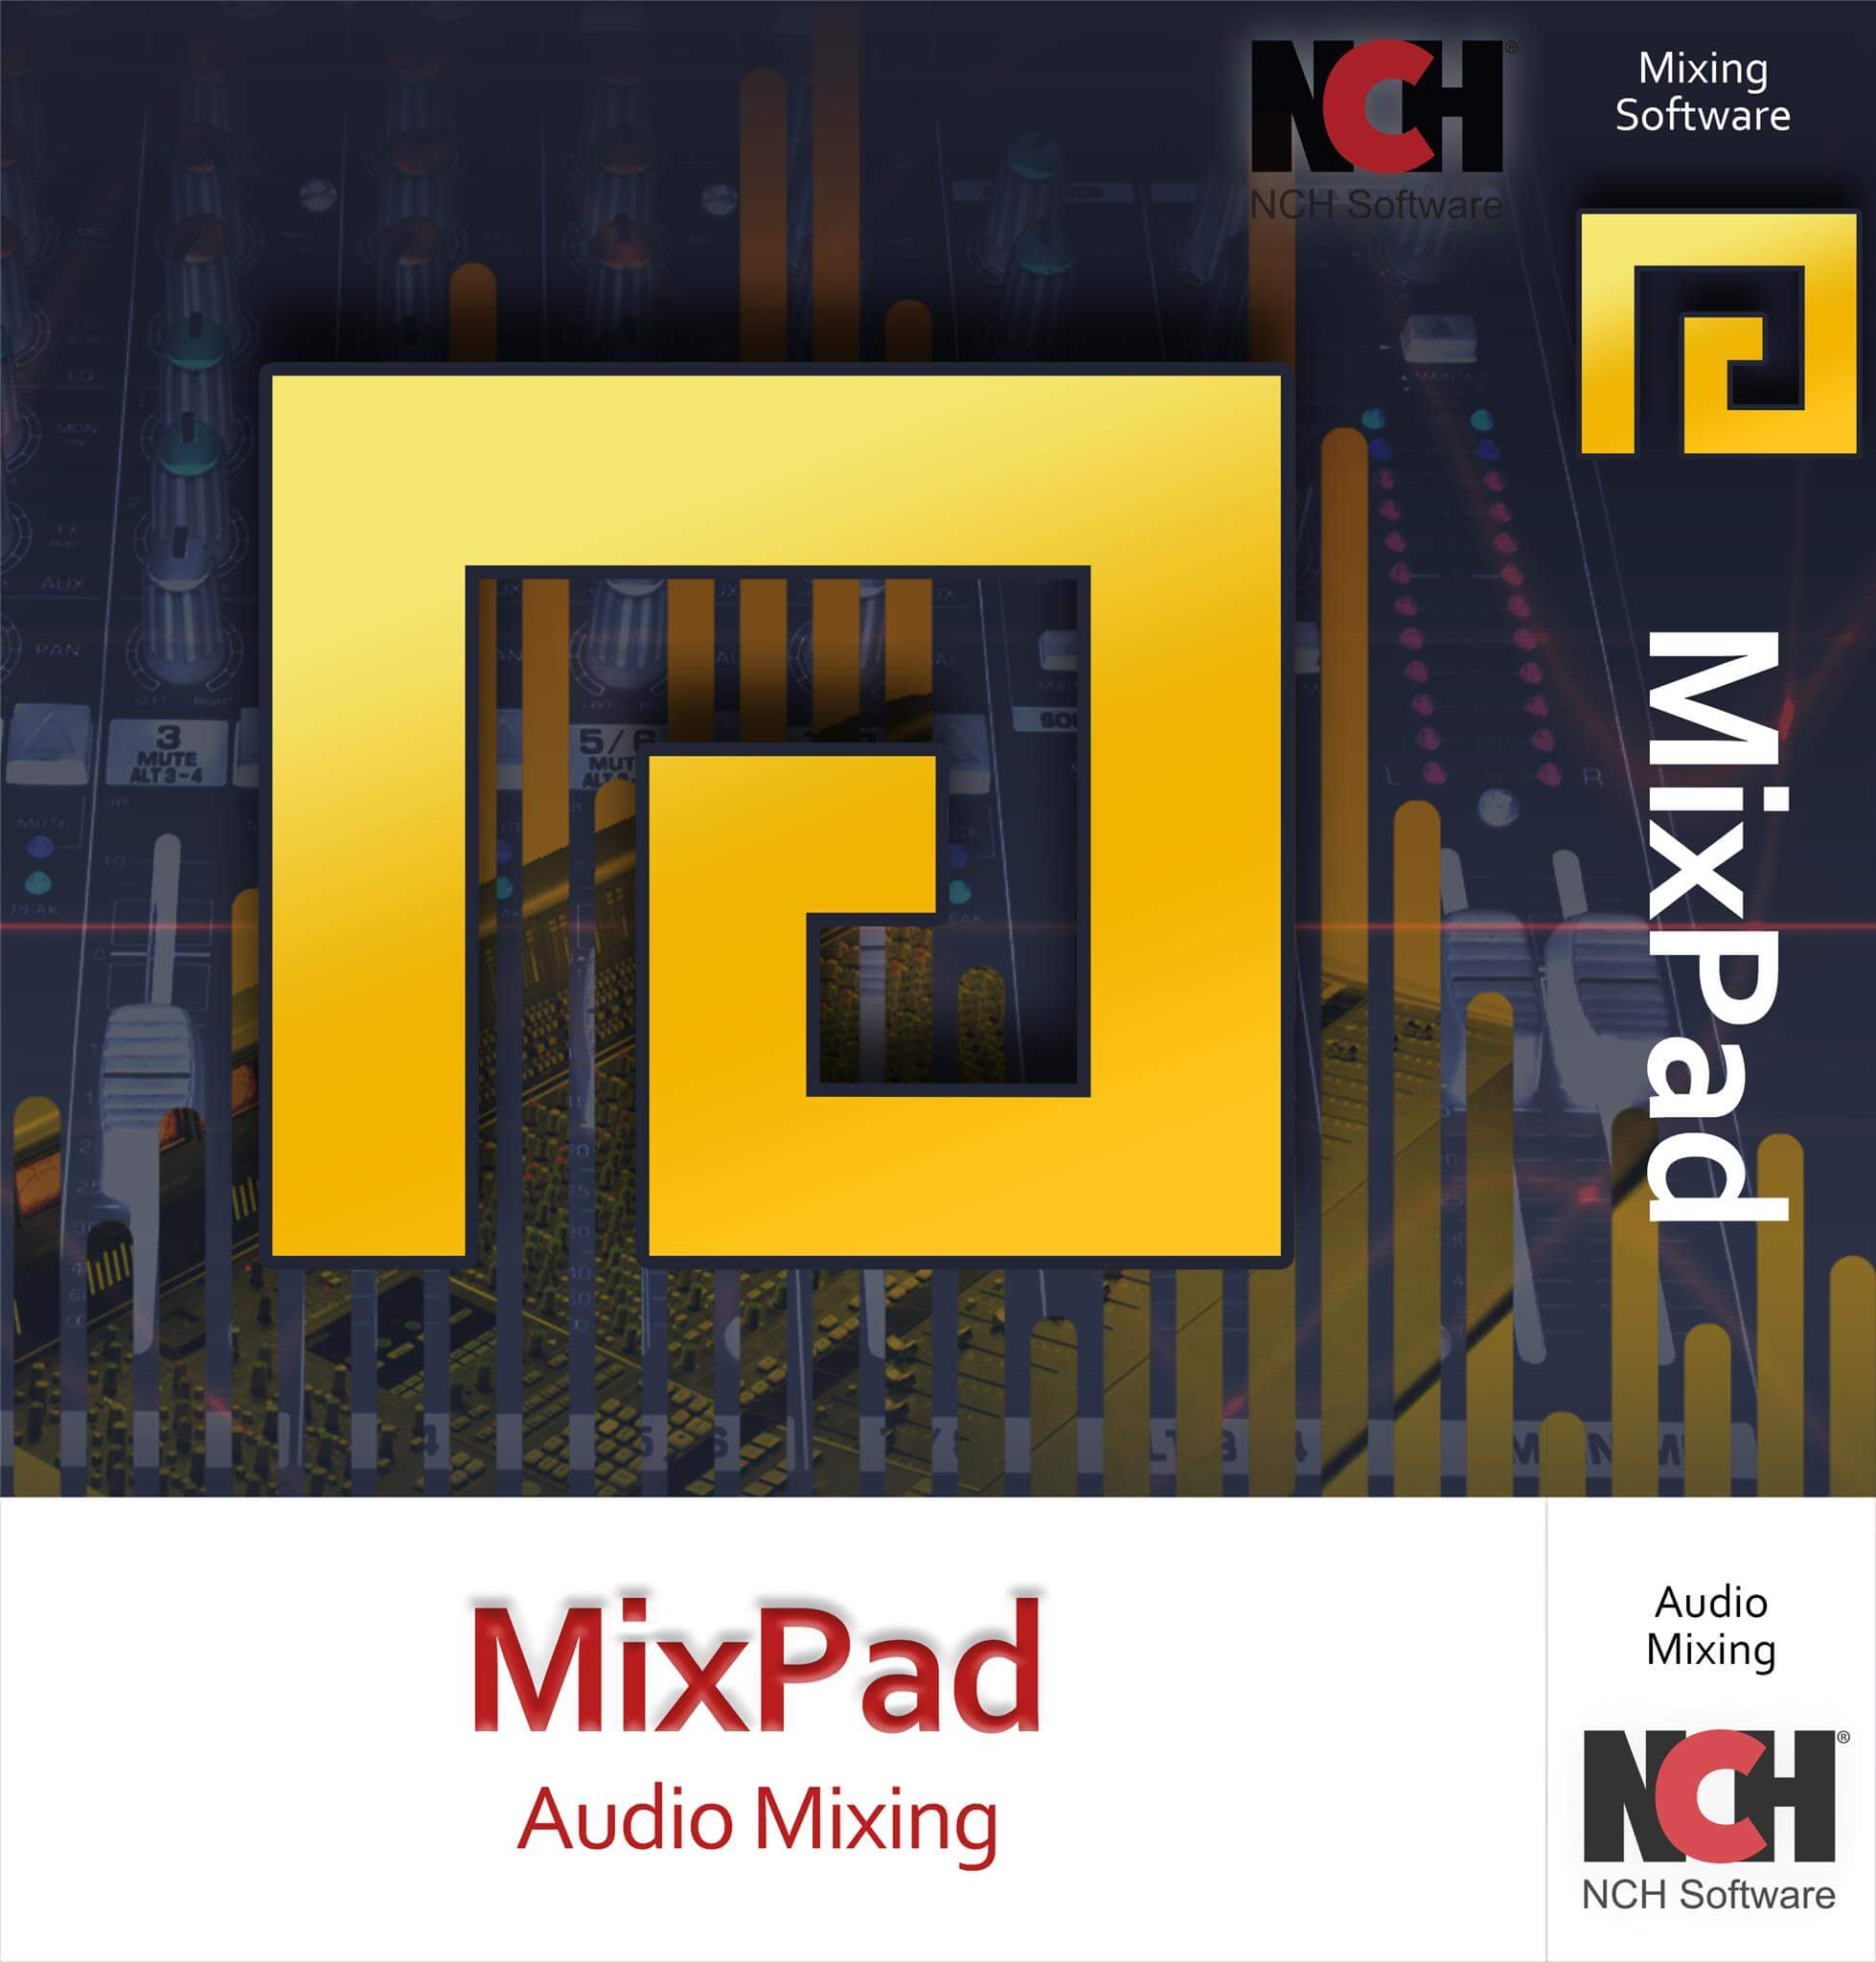 MixPad Registration Code free 2020